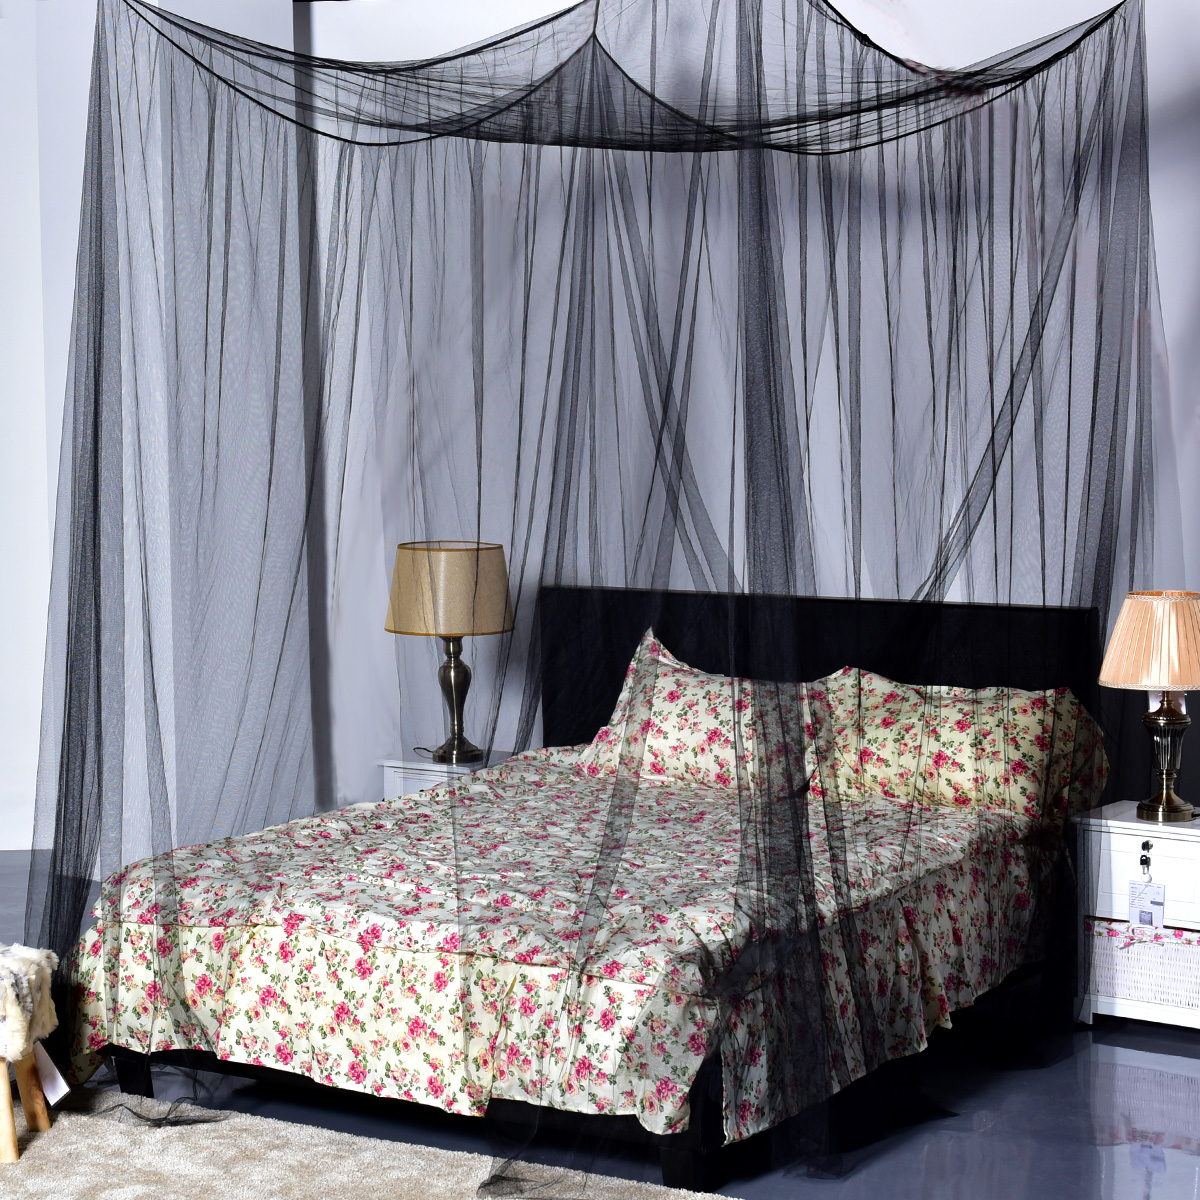 4 Corner Post Bed Canopy Mosquito Net Full Queen King Size Netting Bedding Black : king size bed canopy - memphite.com